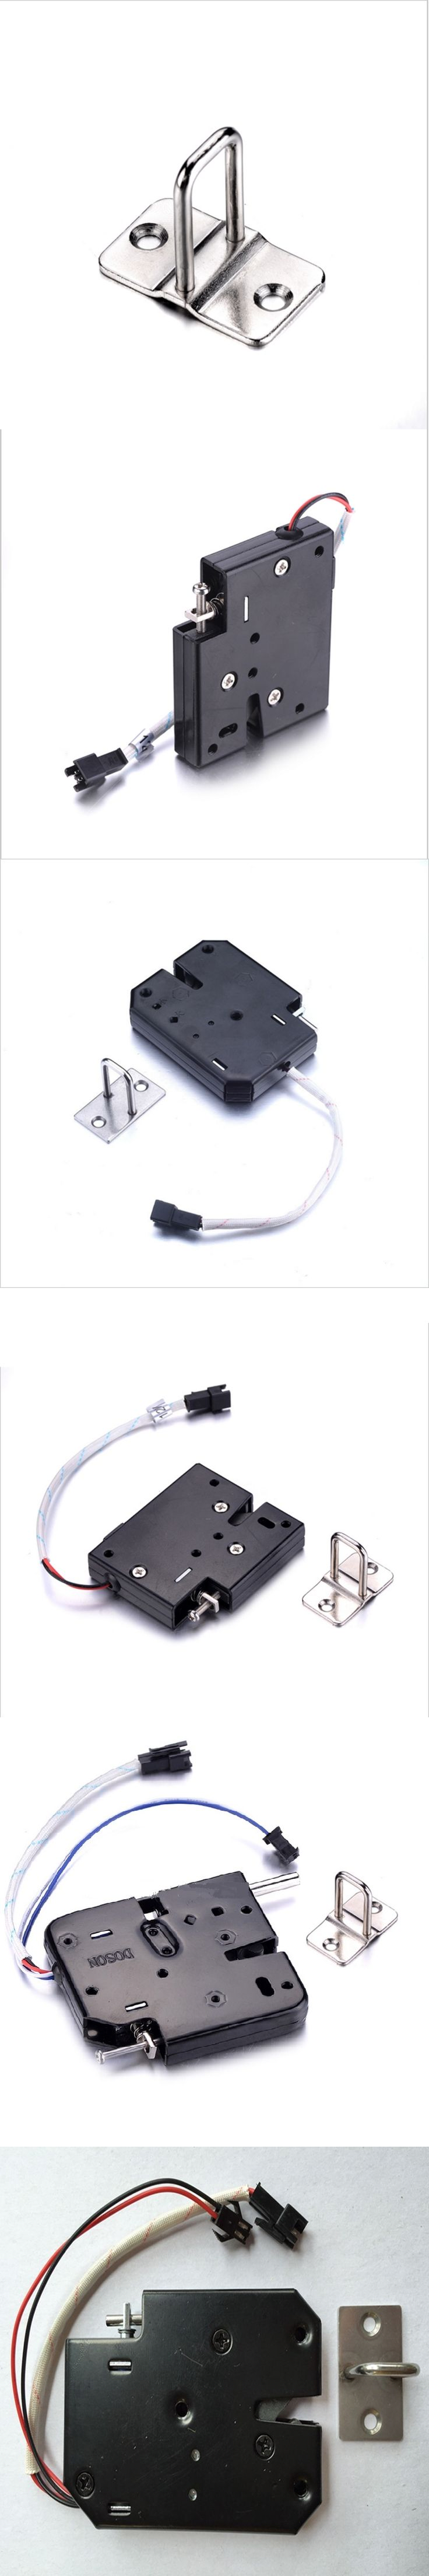 1PCS DC12V Mini Electromagnetic Lock Energy-Saving Long-Life Electronic Locks For Cabient Door Furniture Access Control System